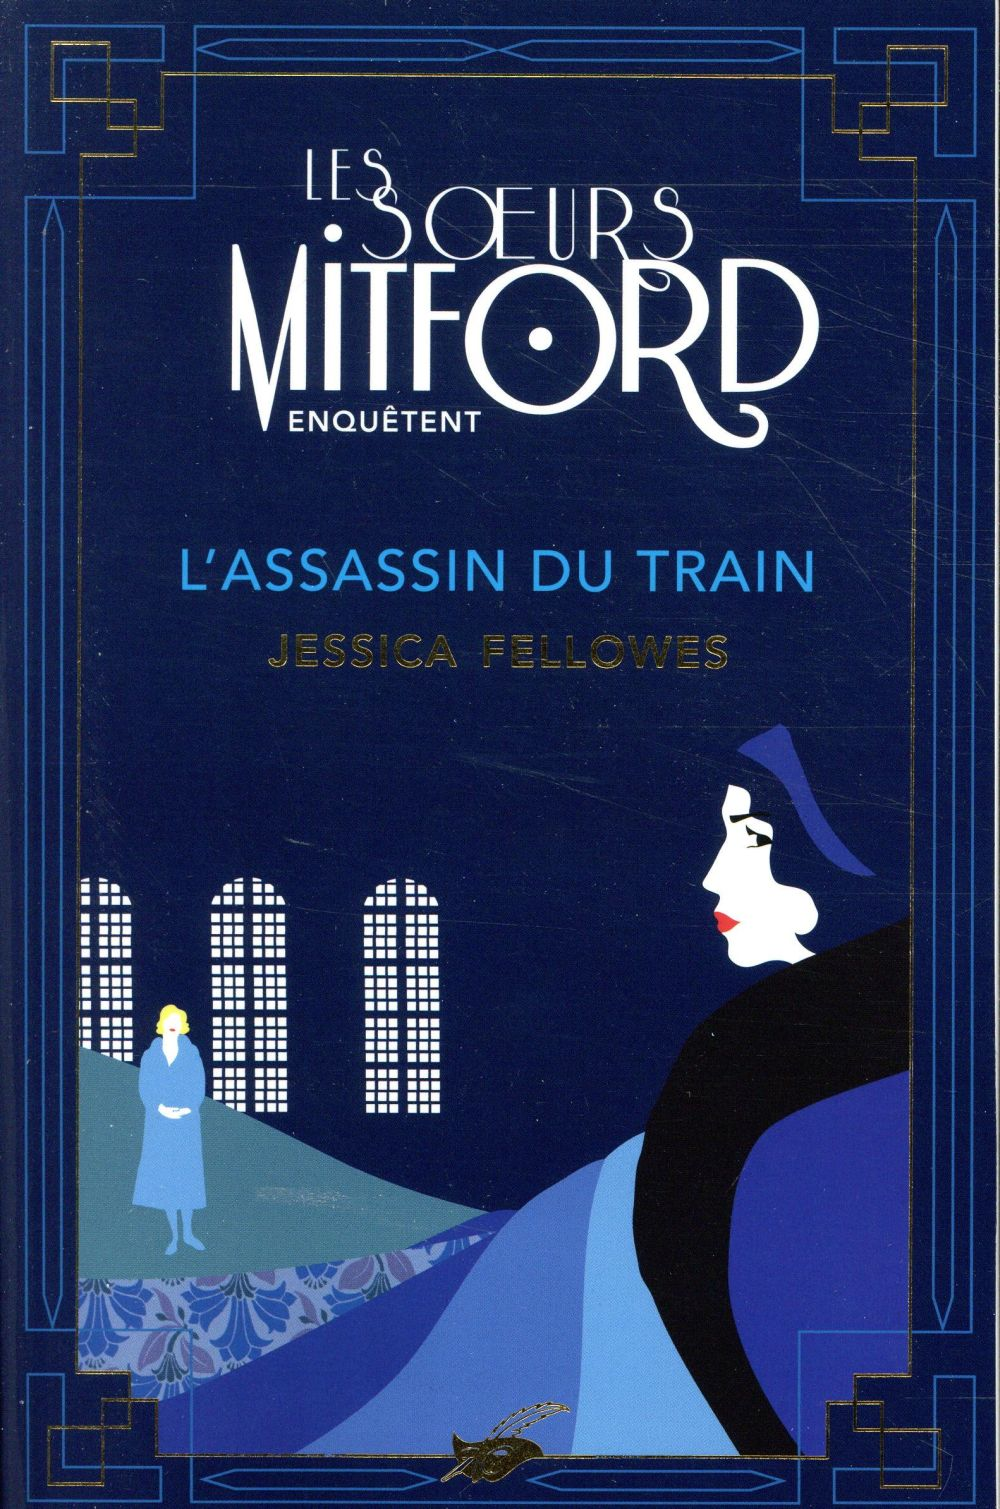 L'assassin du train